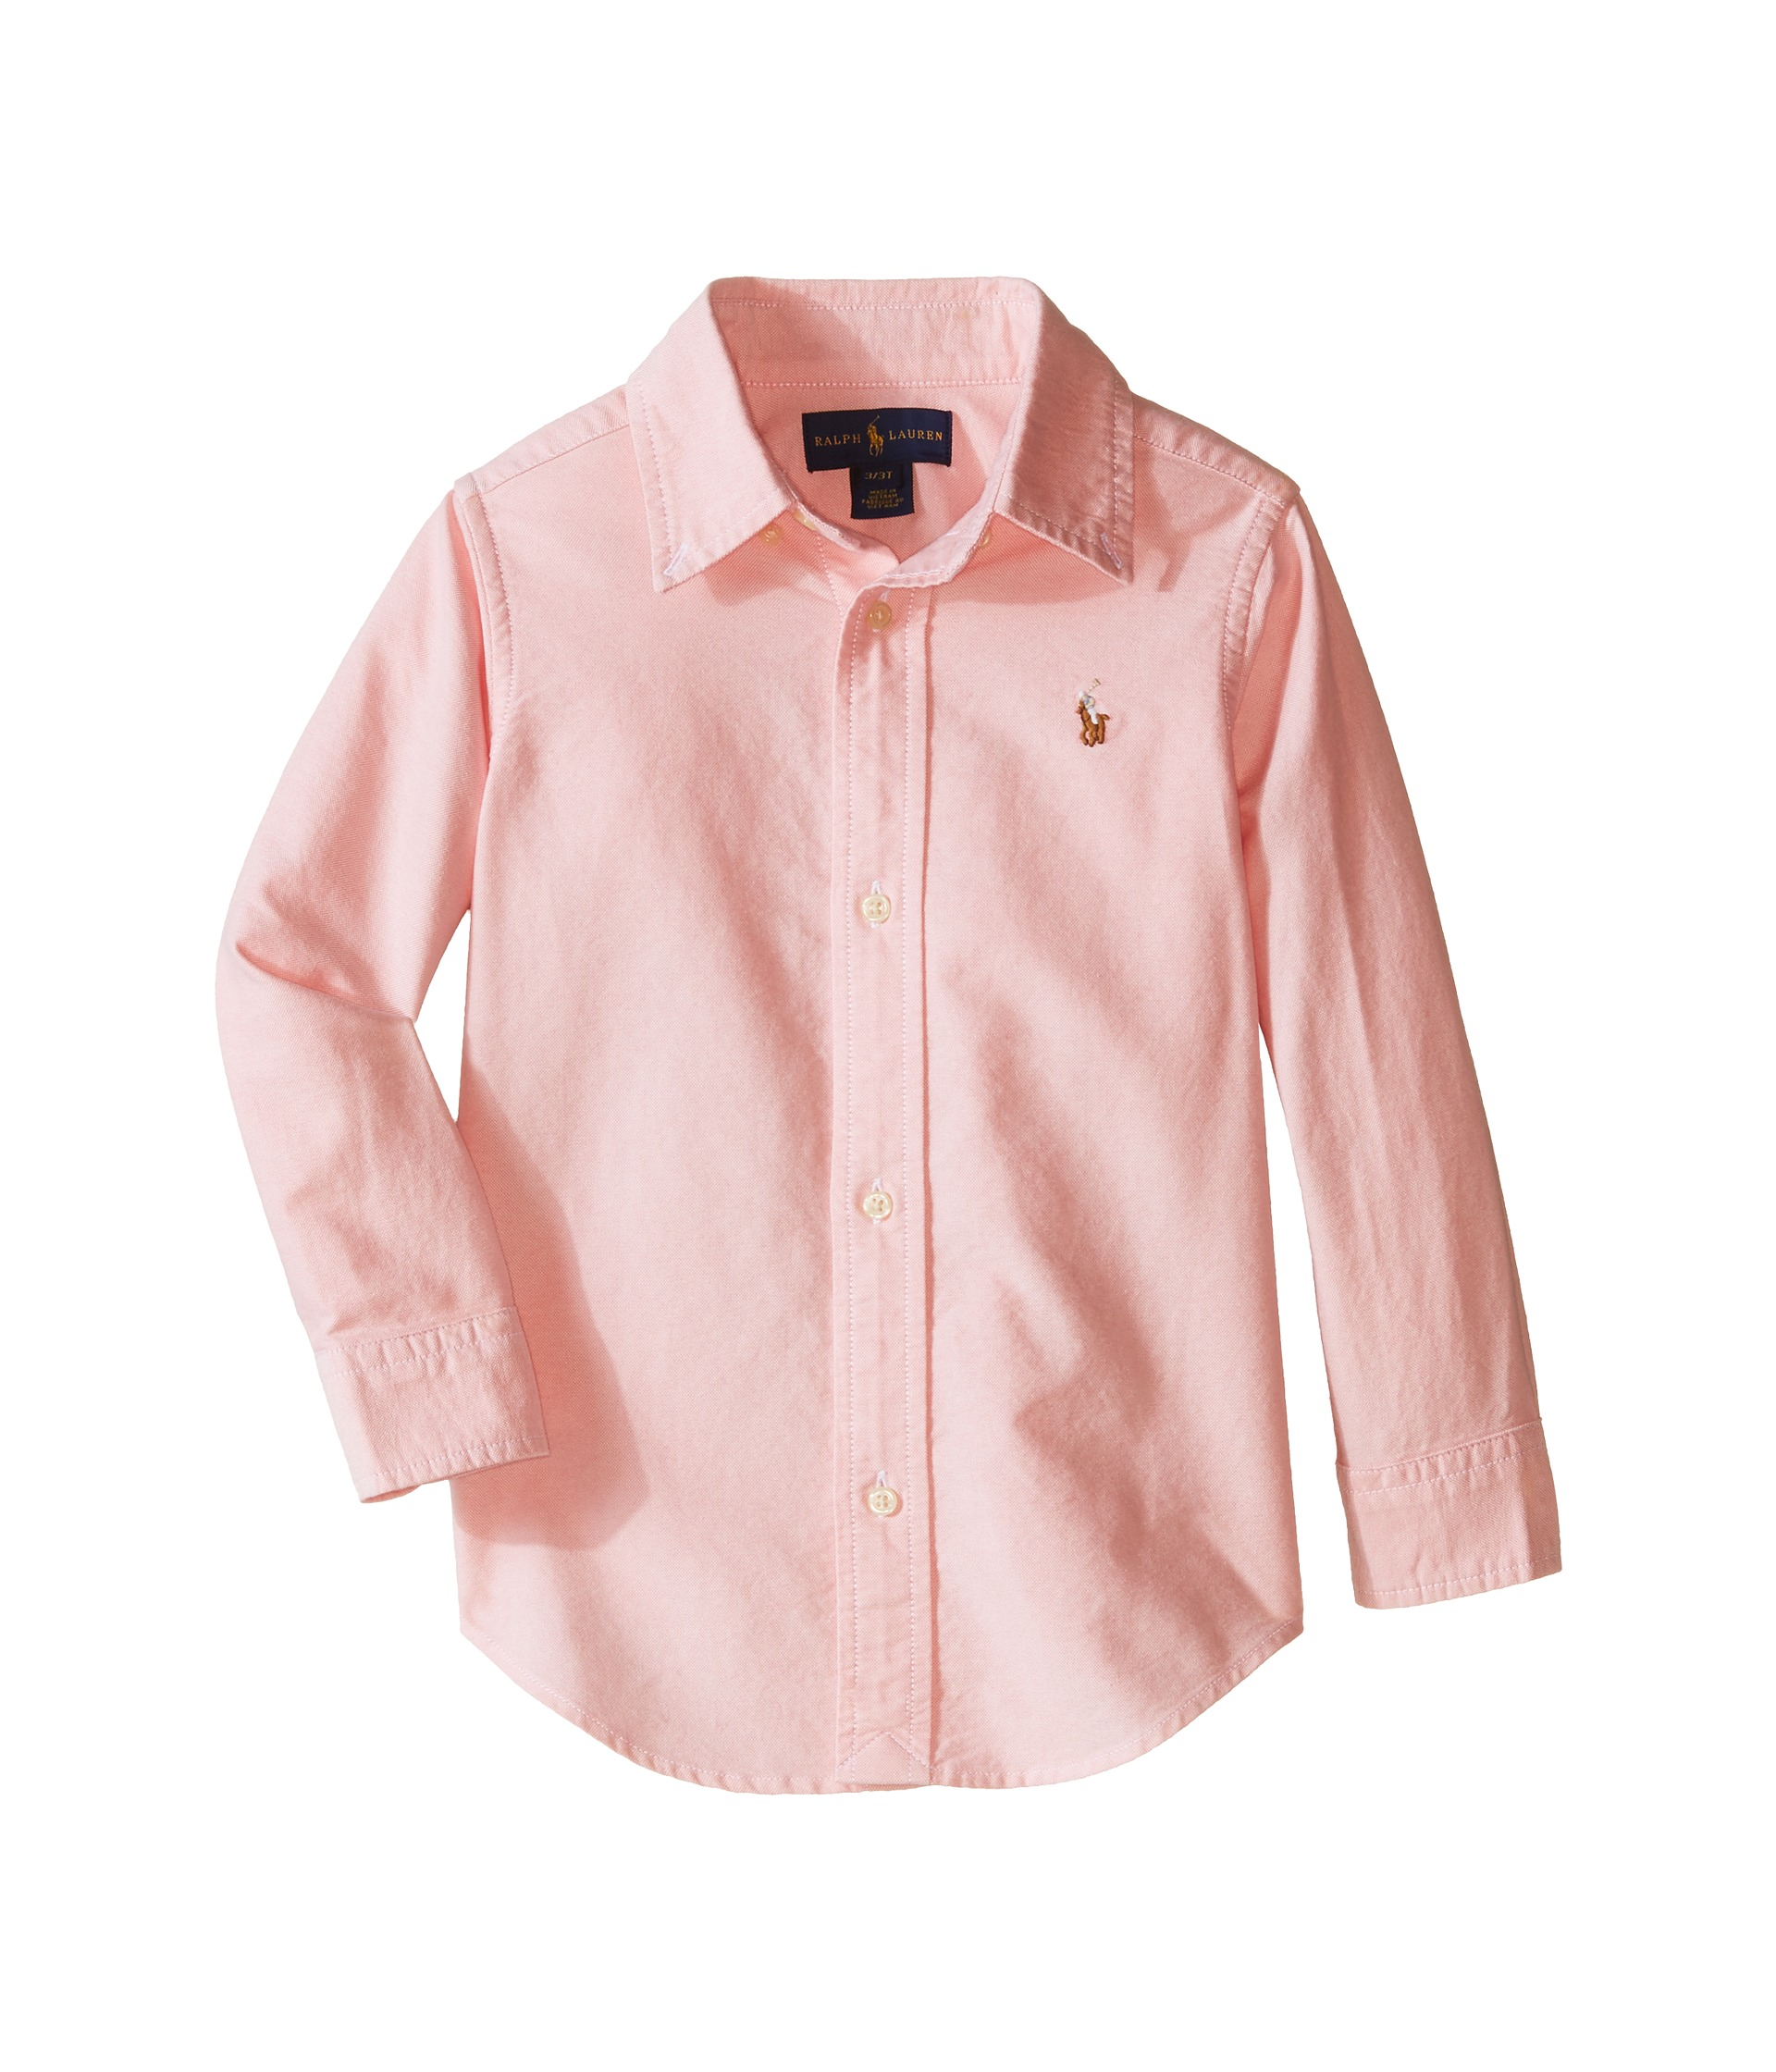 Polo ralph lauren kids solid oxford shirt toddler pink for Baby pink polo shirt